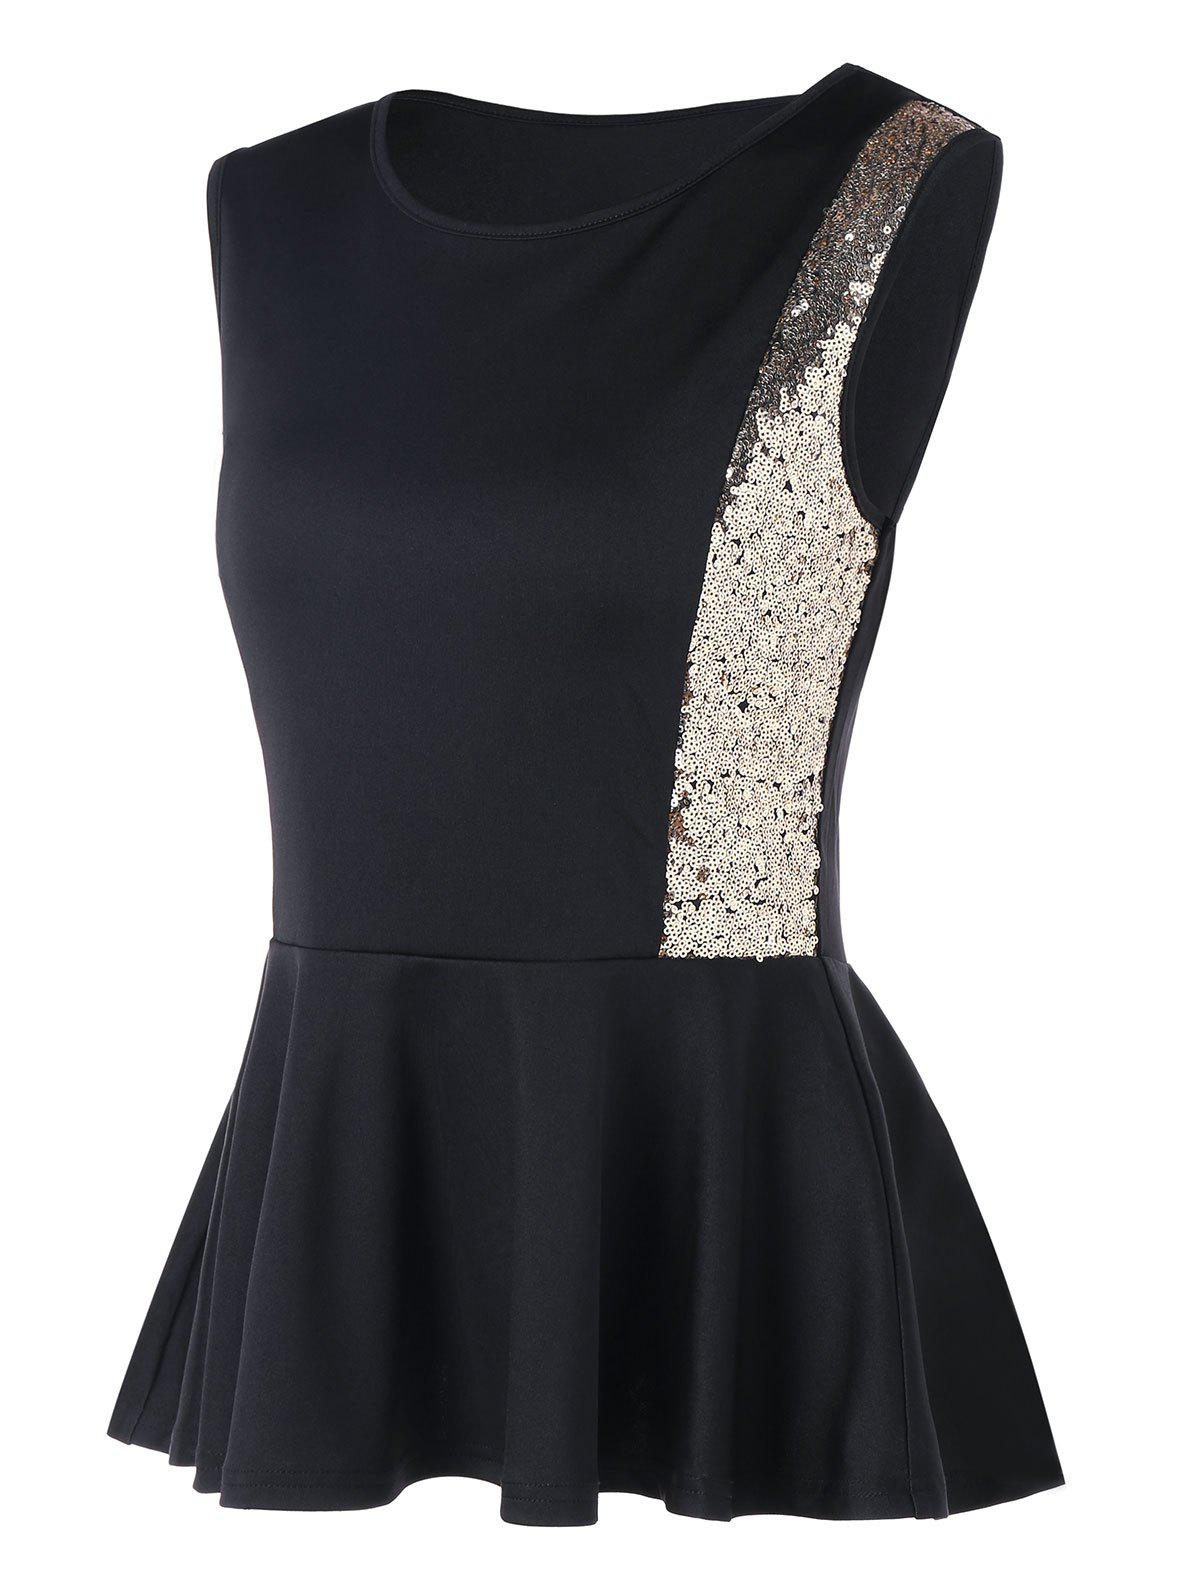 Shops Sleeveless Sequins Peplum Top